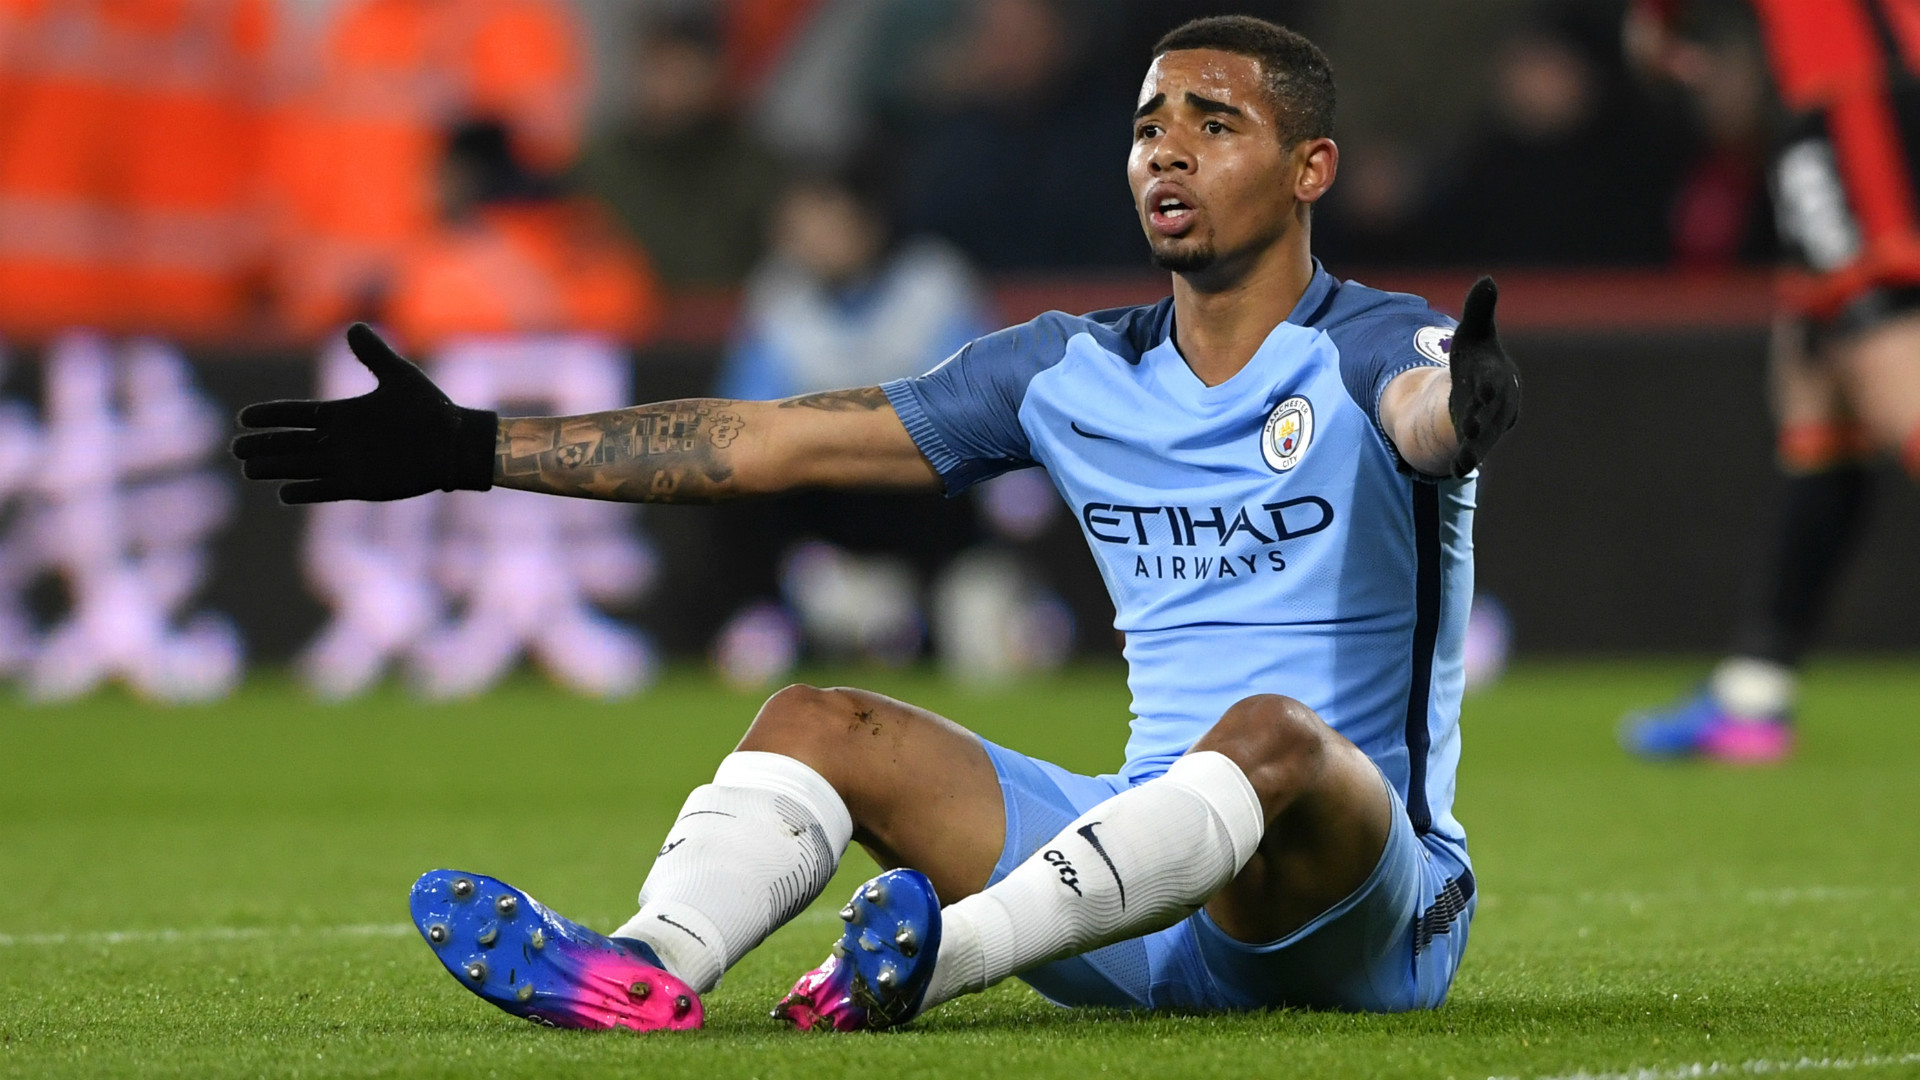 Jesus Wallpapers And Quotes Gabriel Jesus Wallpapers Hd